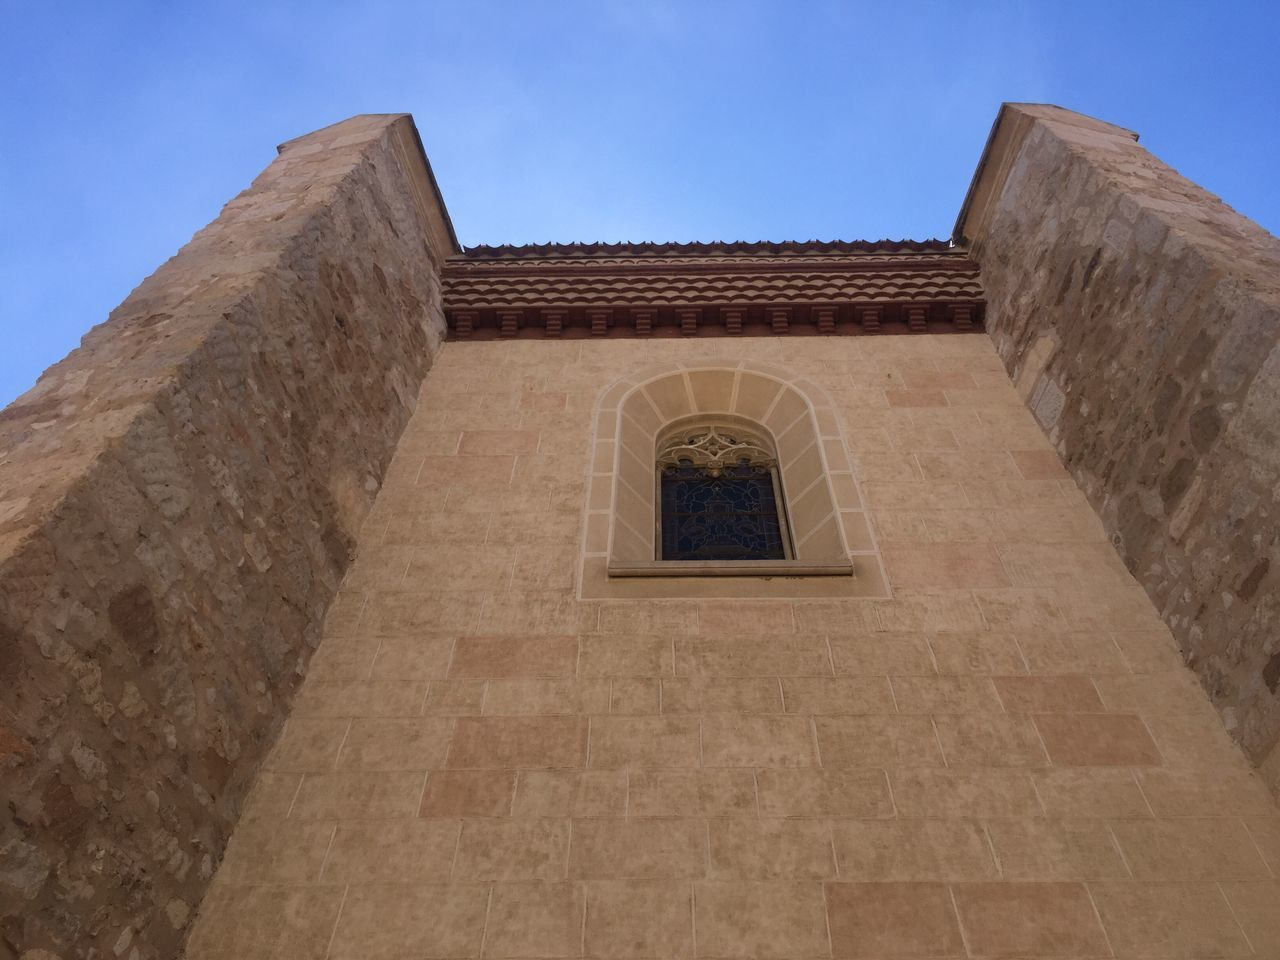 Architecture Built Structure Low Angle View Building Exterior History Travel Destinations Place Of Worship Day Religion Spirituality Sky No People Ancient Civilization Outdoors Ancient Alcalá De Henares. (Madrid) 35°C